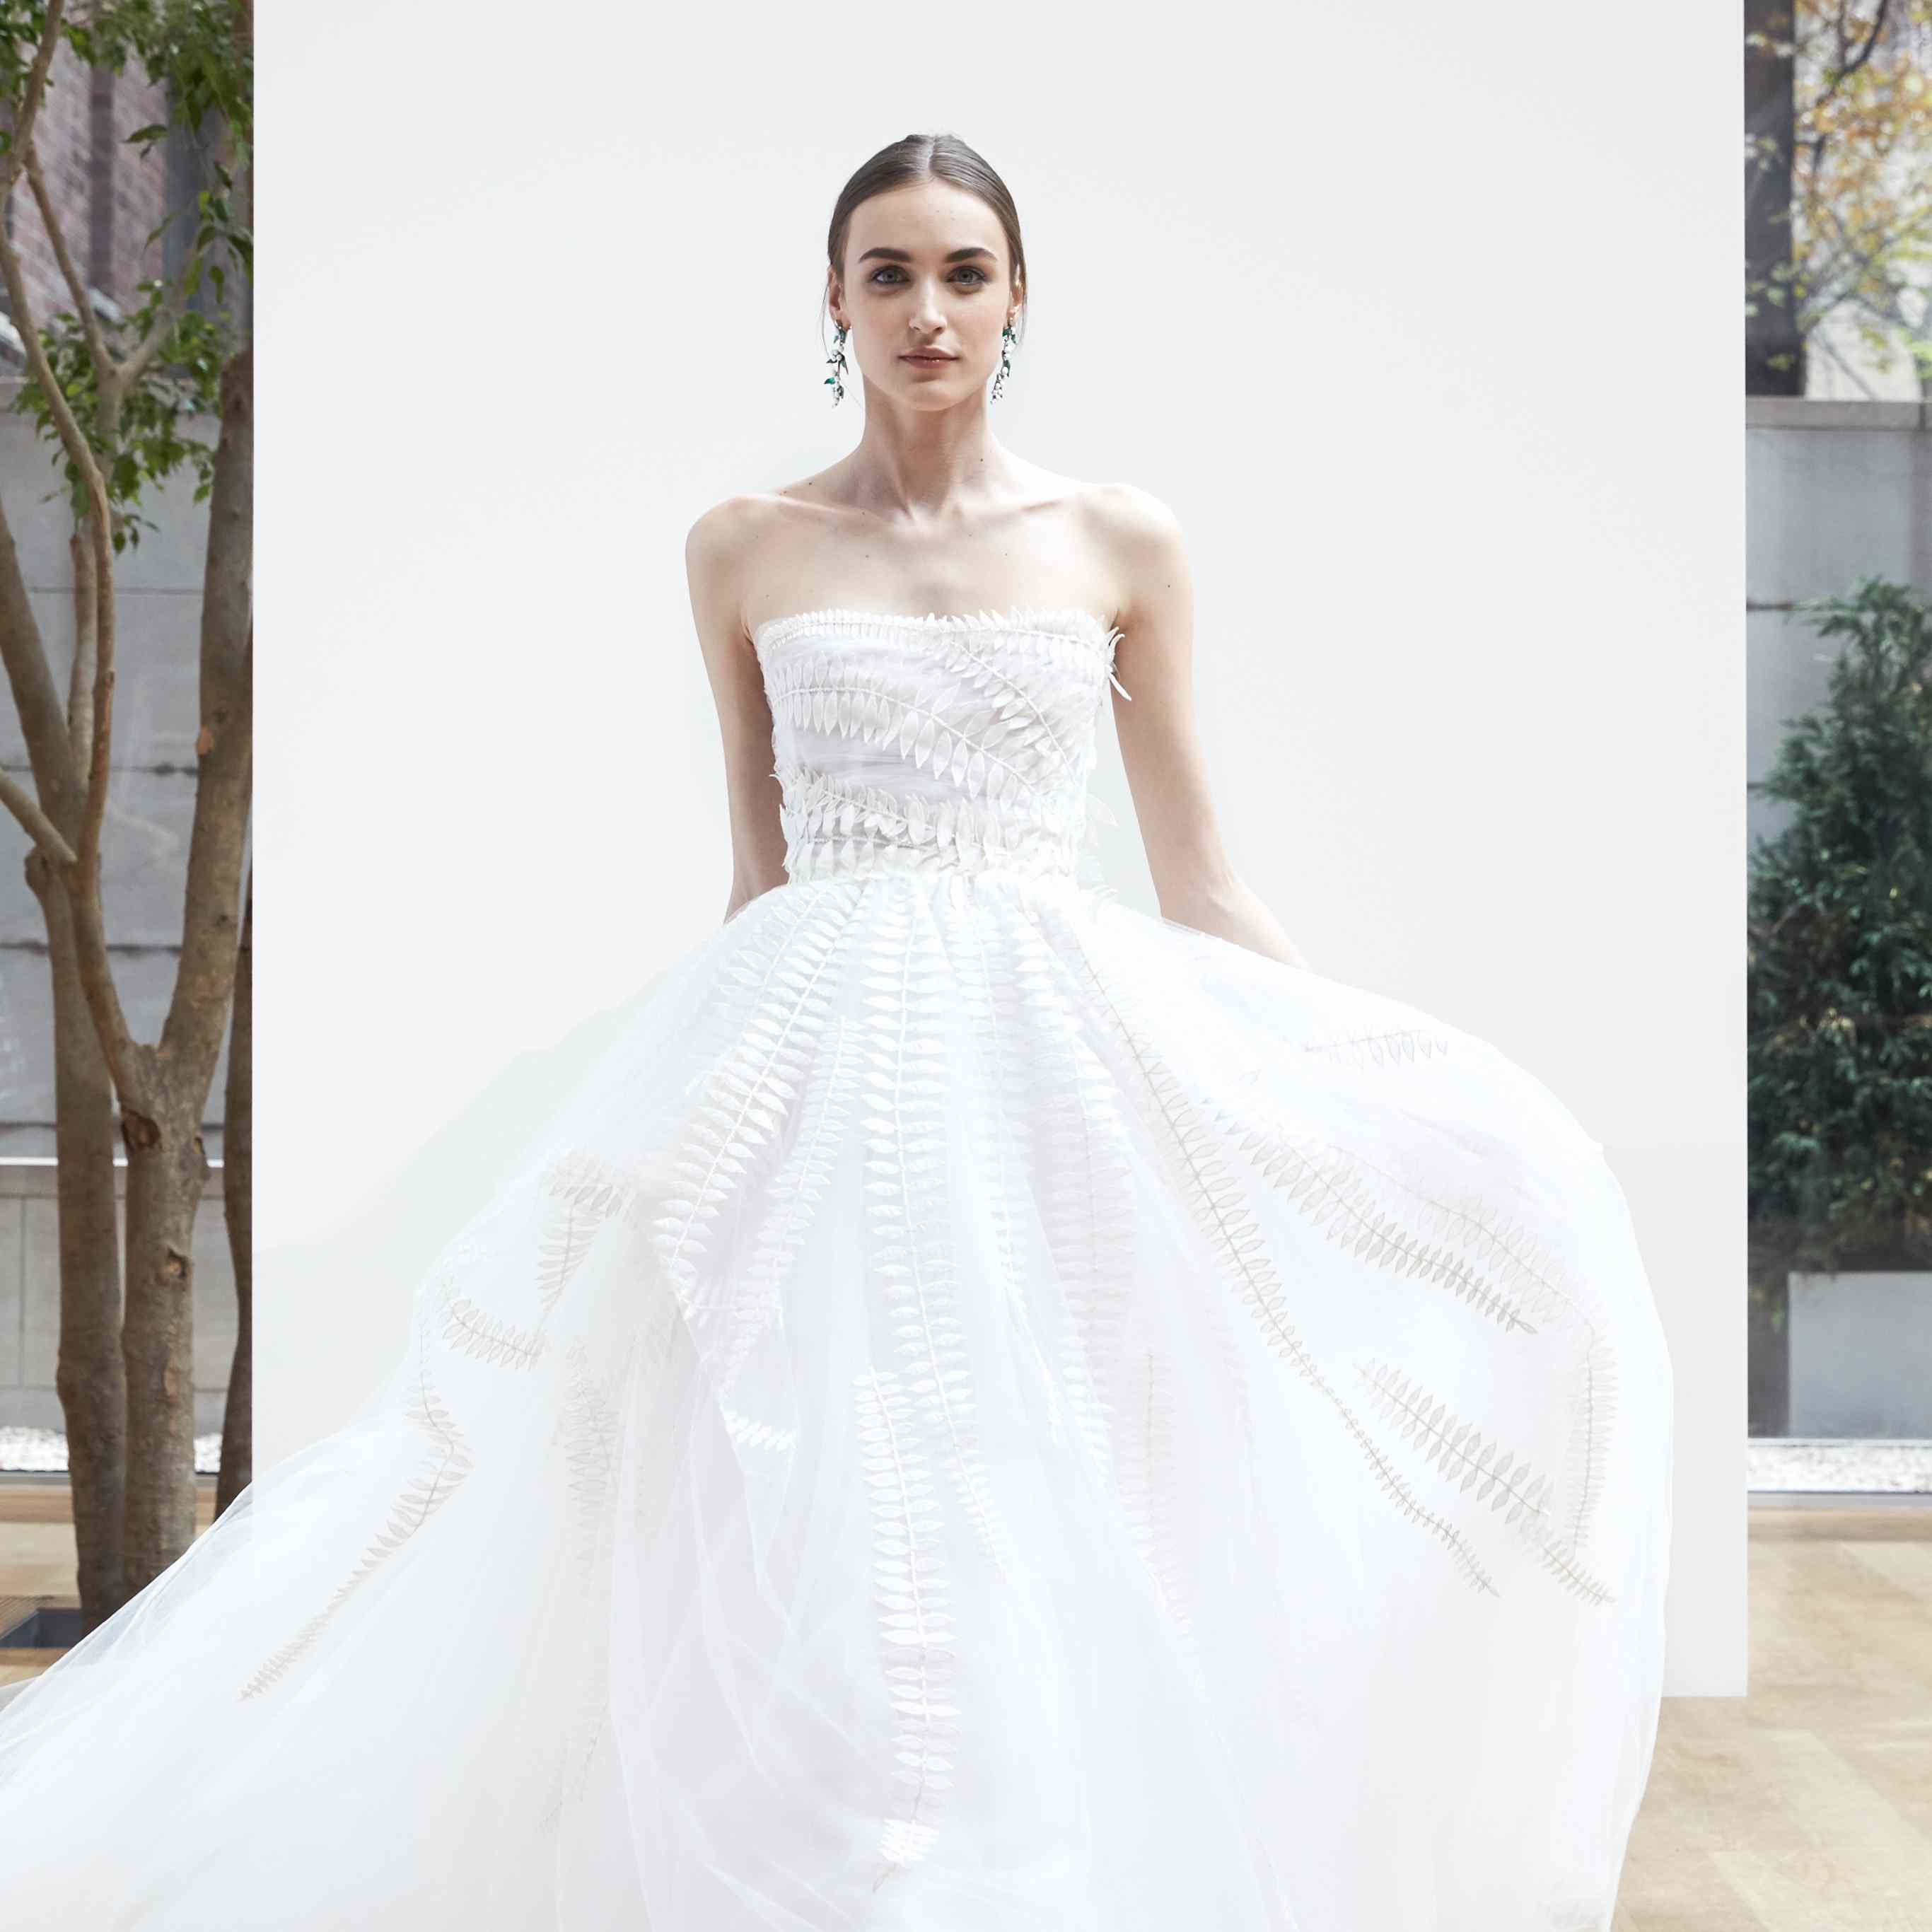 Wedding Gowns For Small Bust: How To Find The Perfect Wedding Dress For Your Body Type